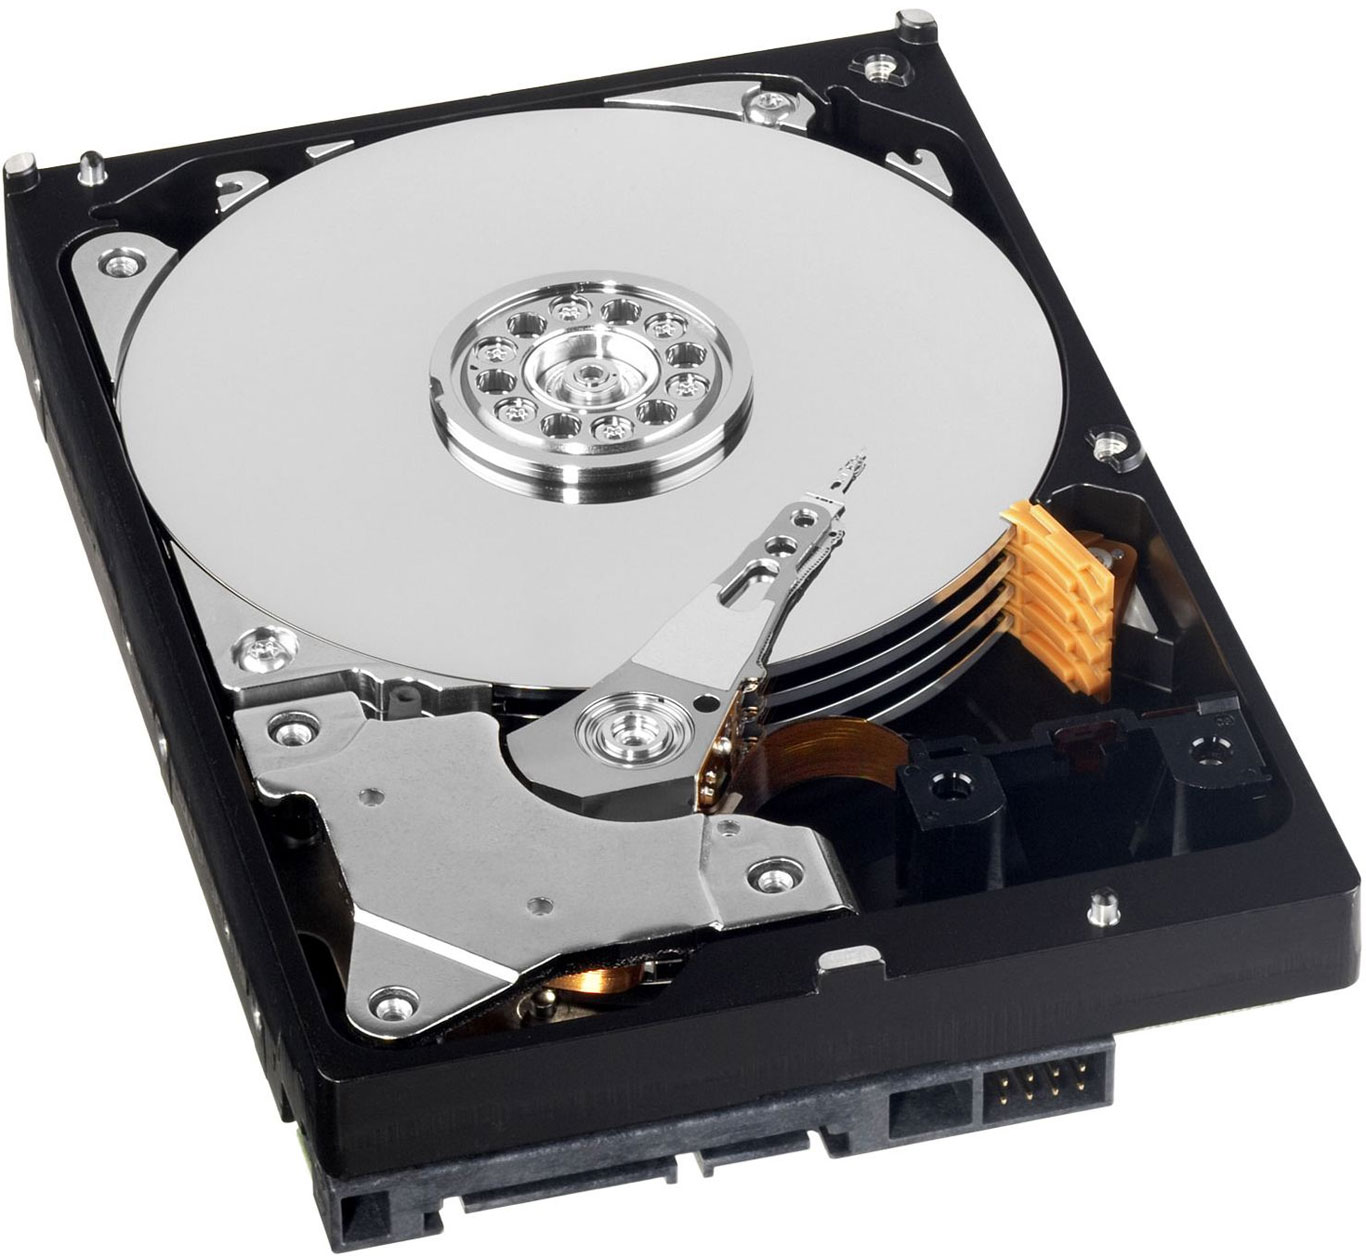 PC Sata 40GB HDD